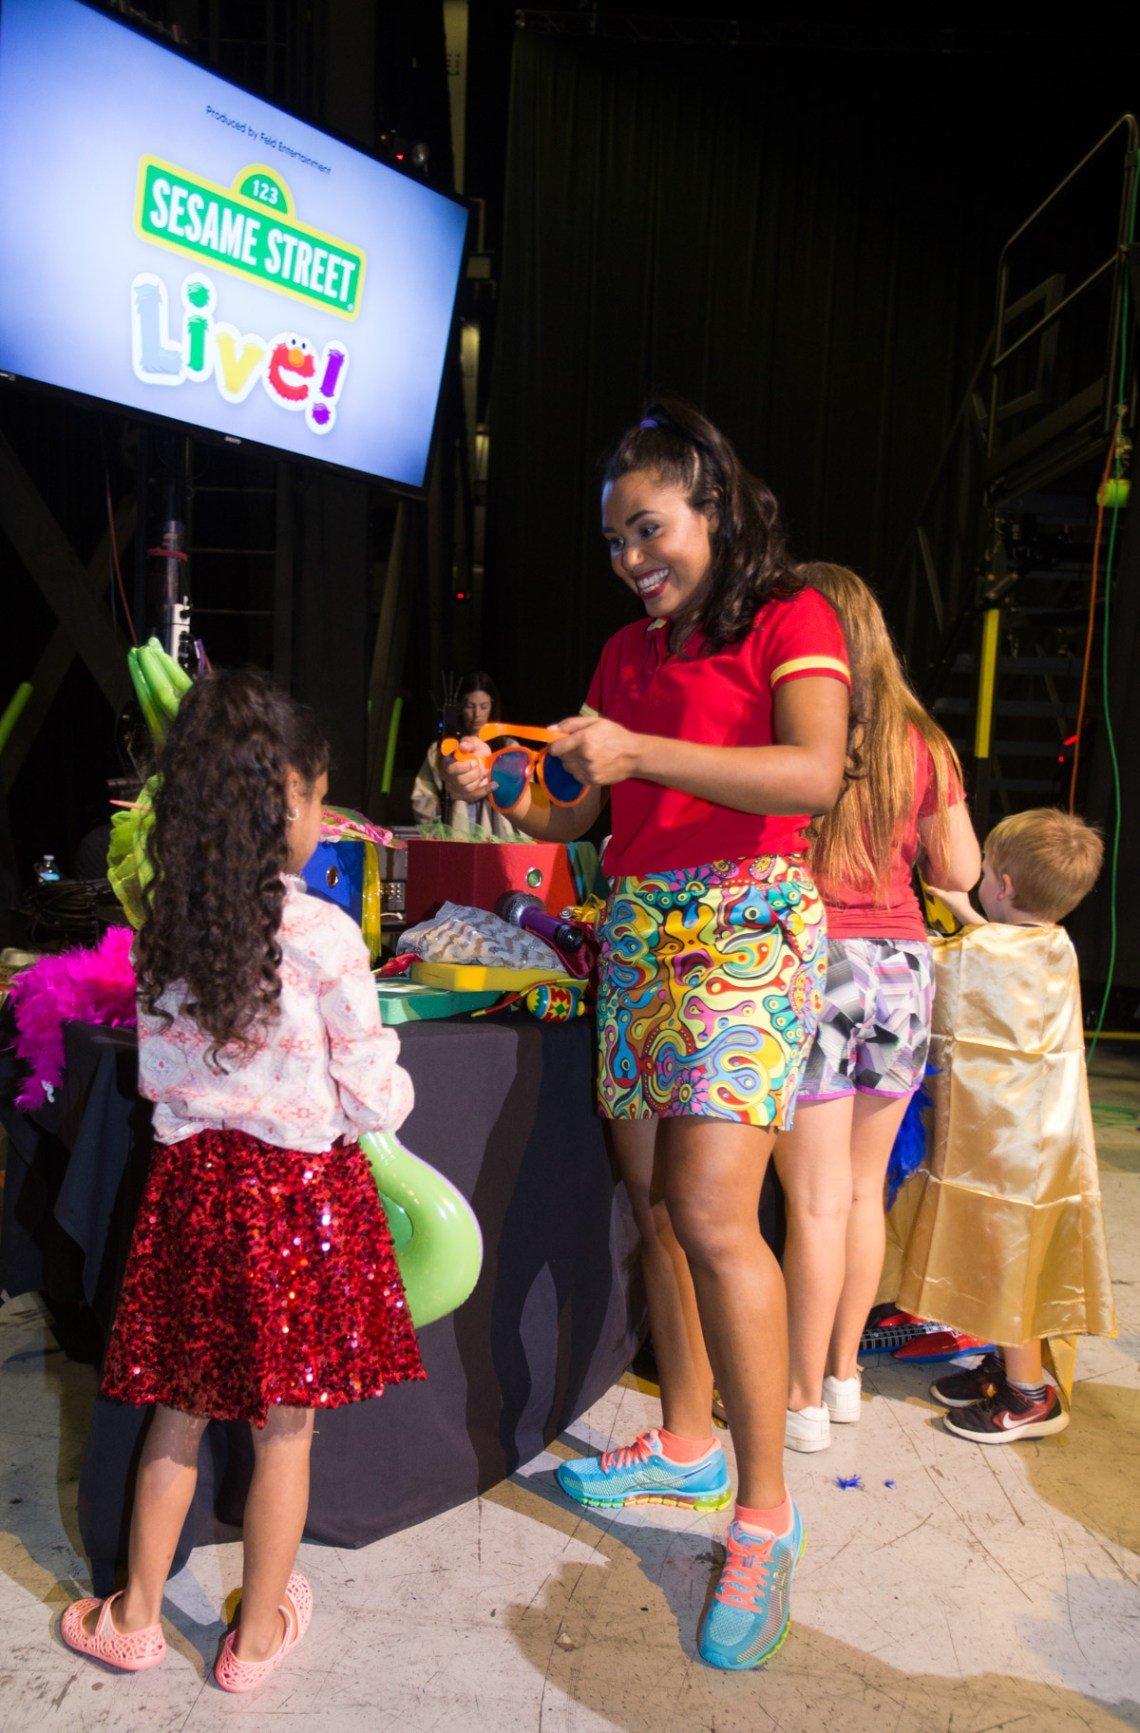 Sesame Street Live Behind the Scenes Look with Misty Nelson, Mom Blogger and Influencer @frostedevents frostedblog.com